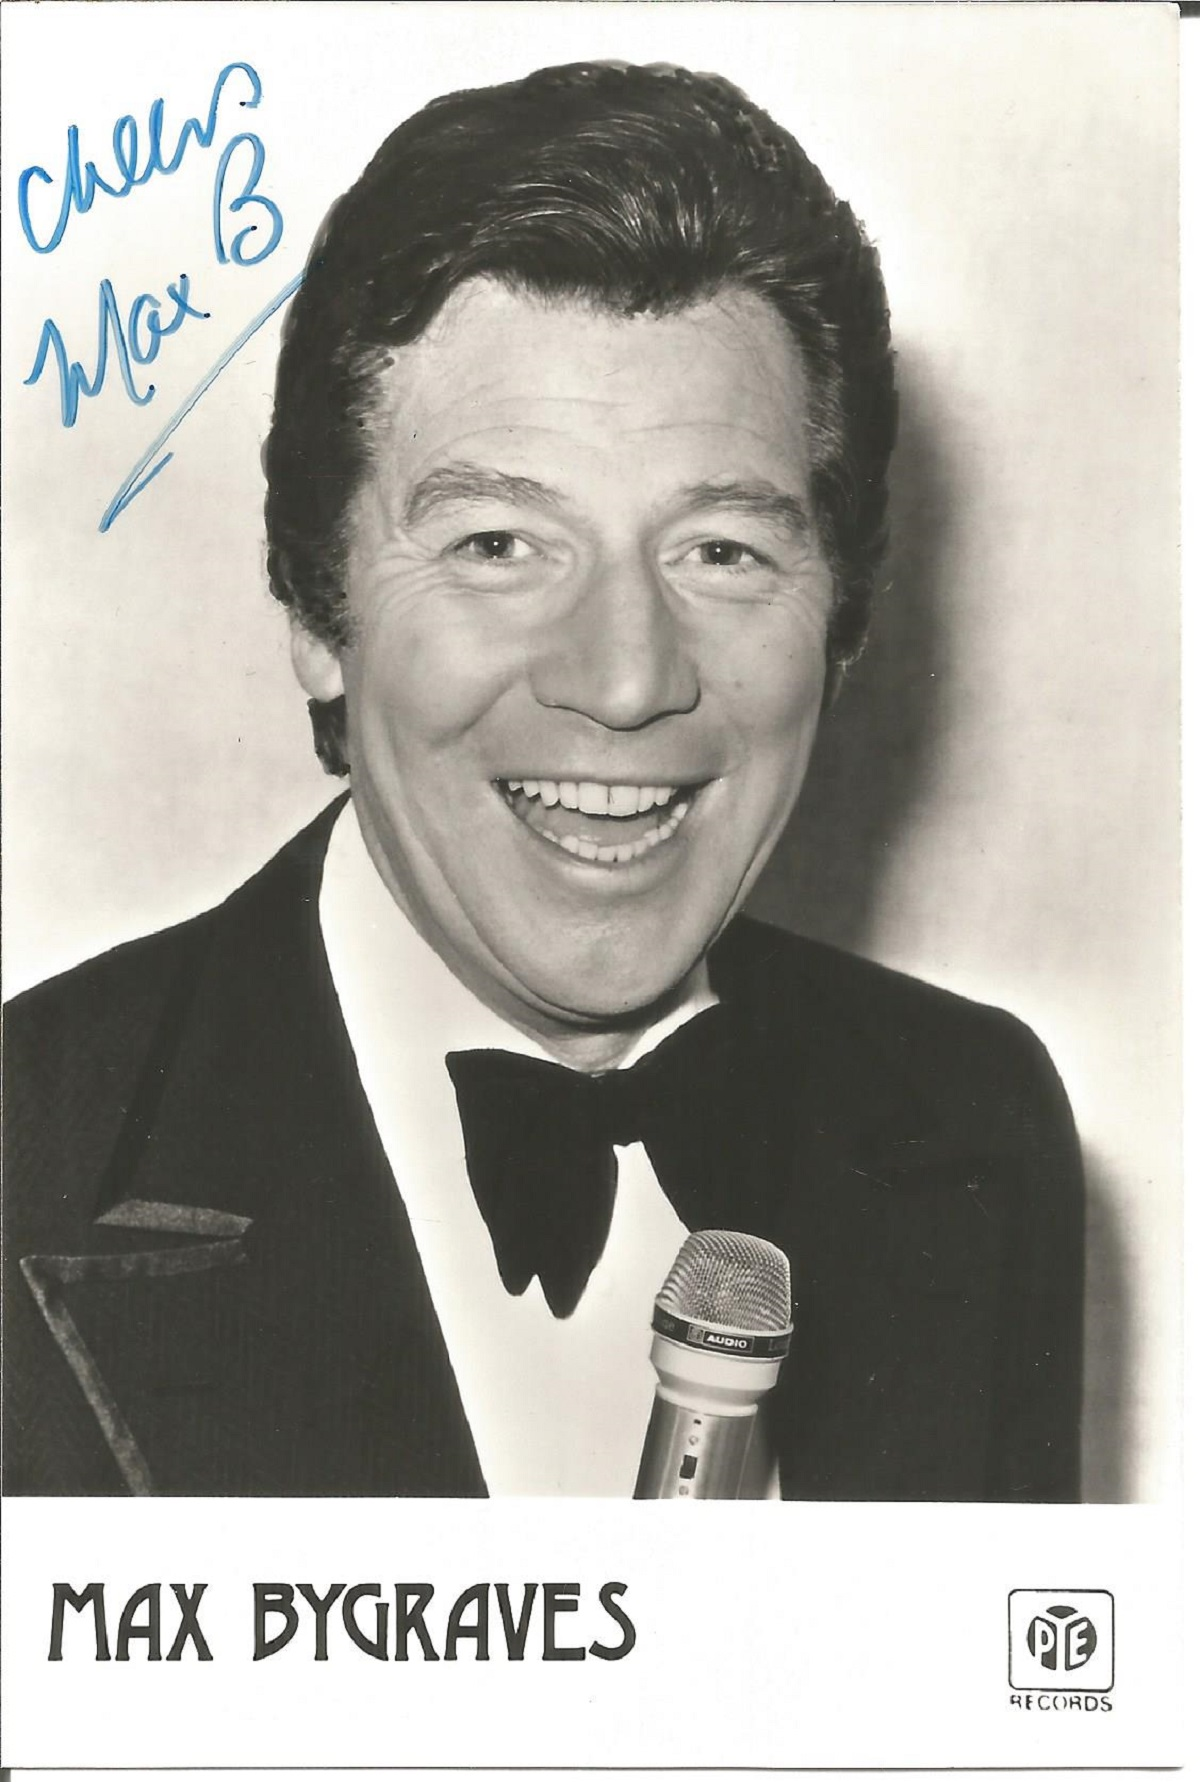 Max Bygraves signed 6x4 black and white photo. Good Condition. All autographs come with a. Good